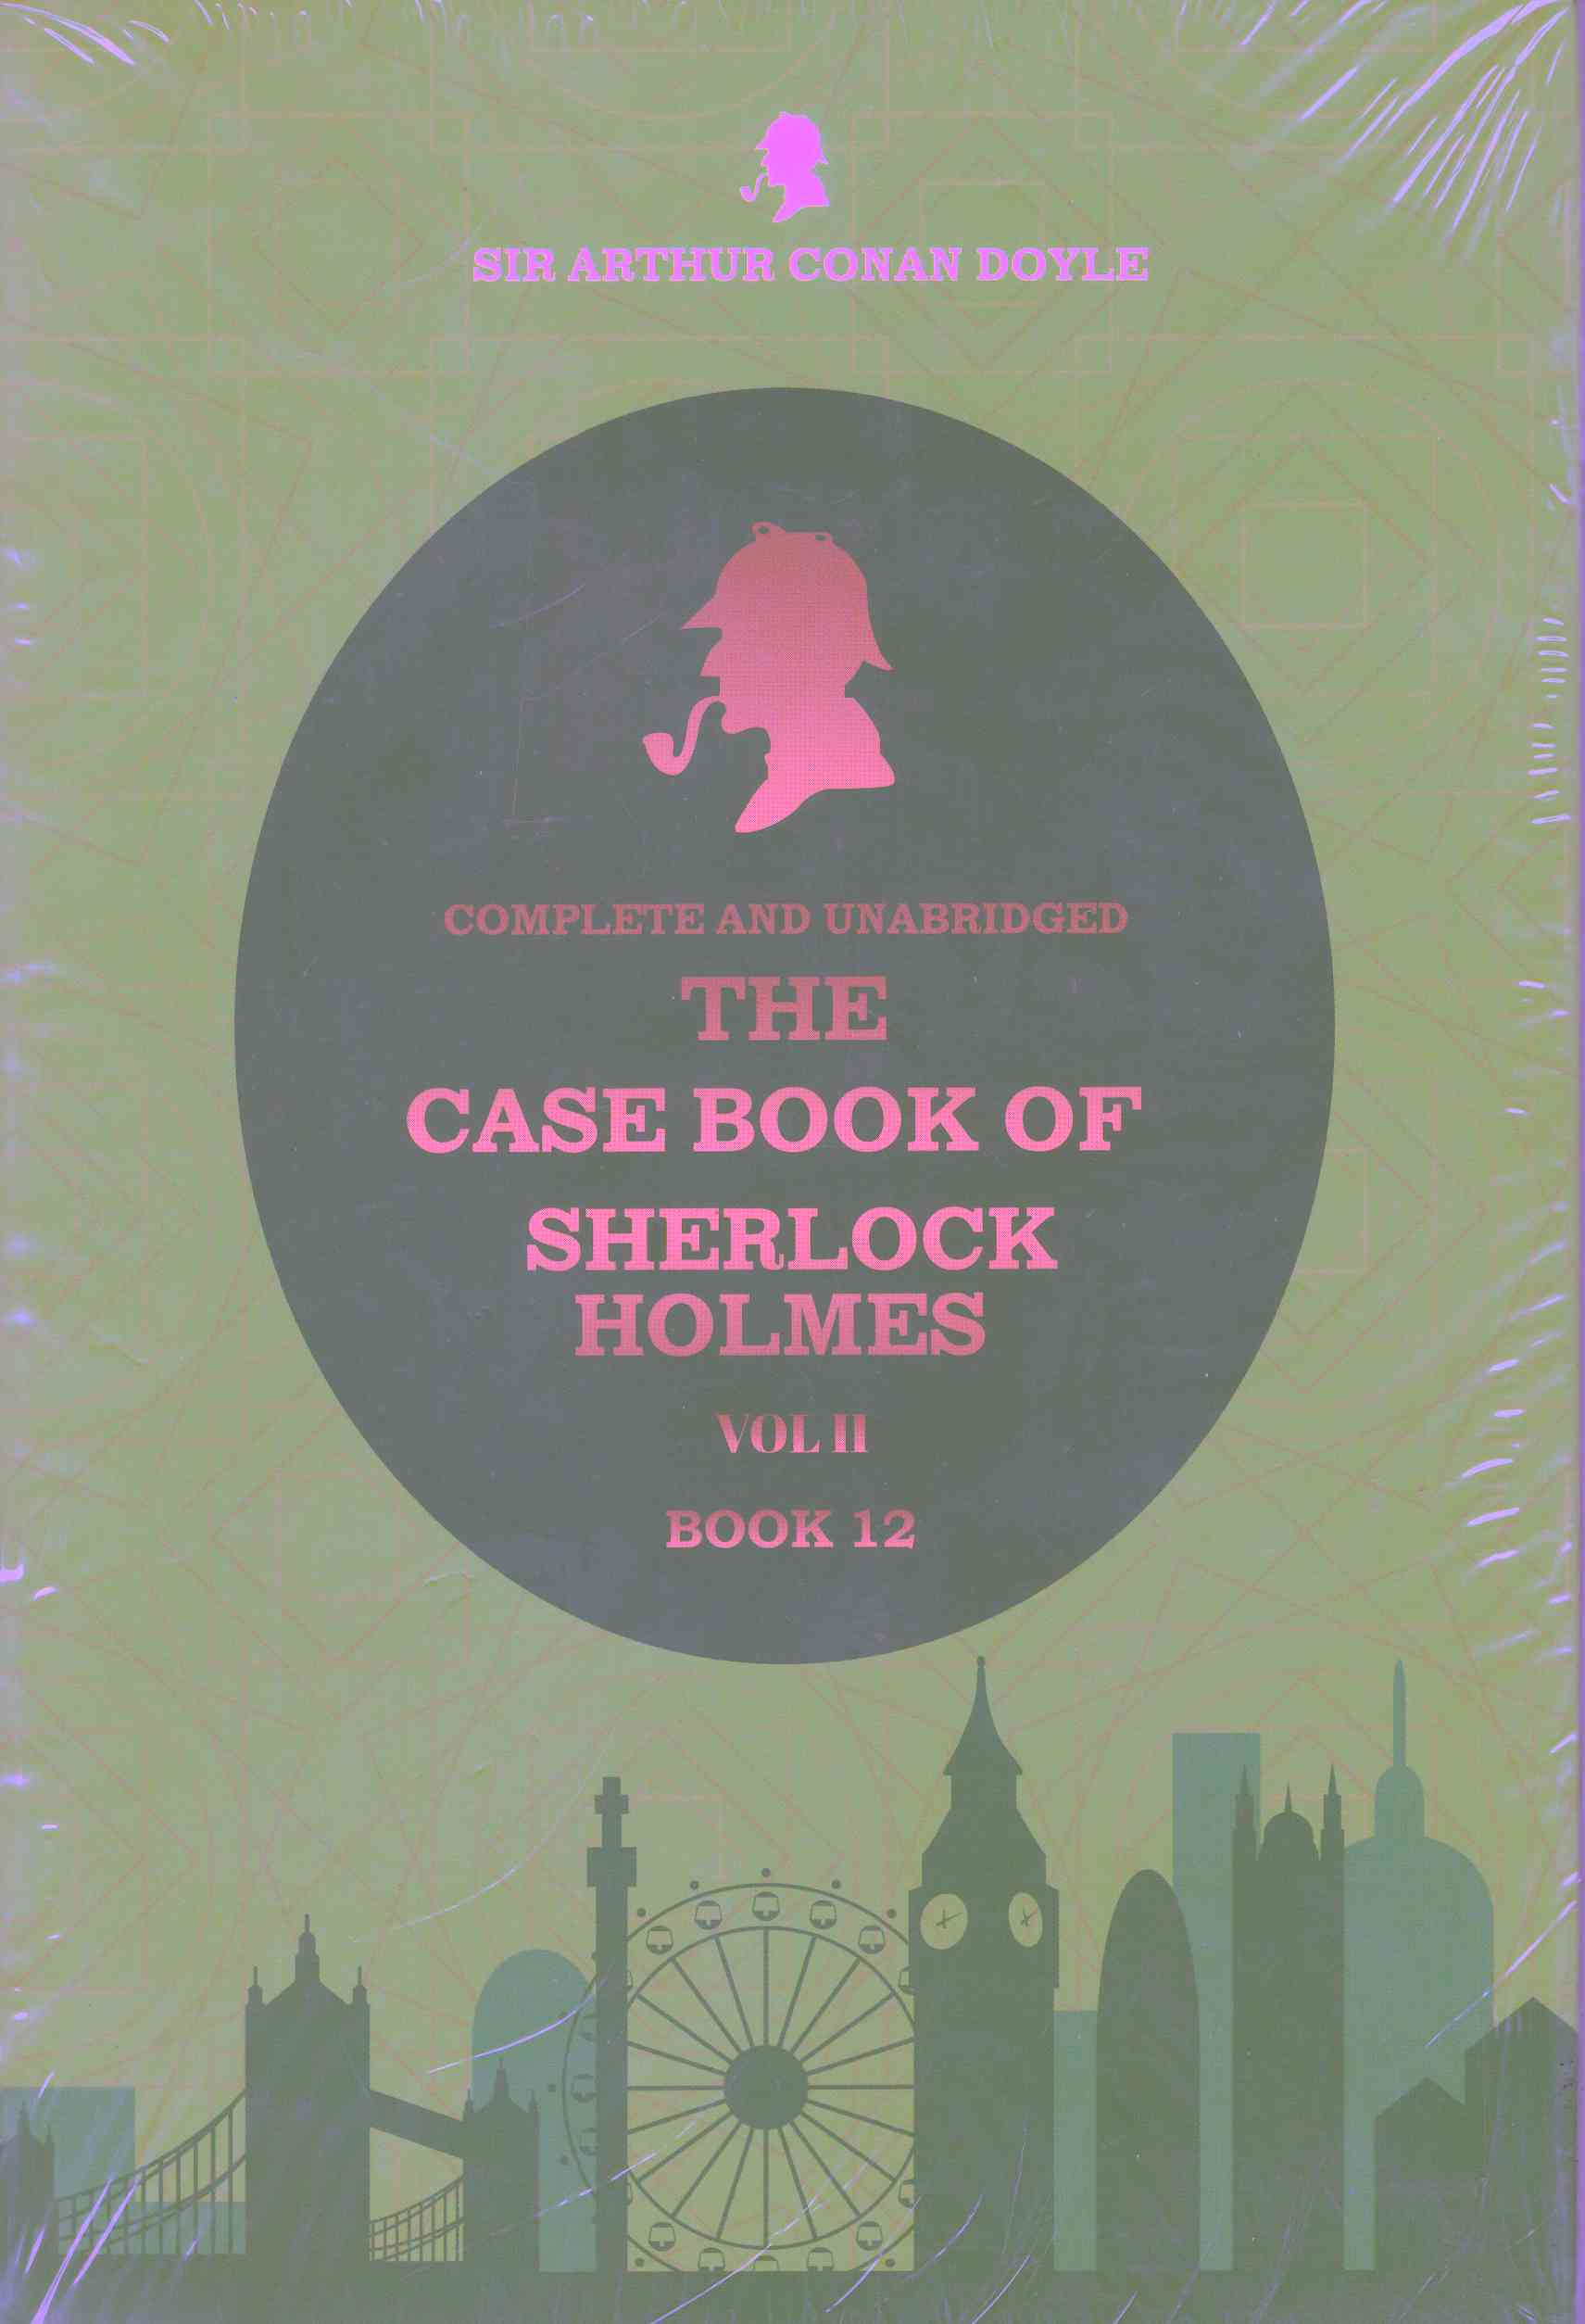 The case Book of Sherlock Homes vol ii Book 12